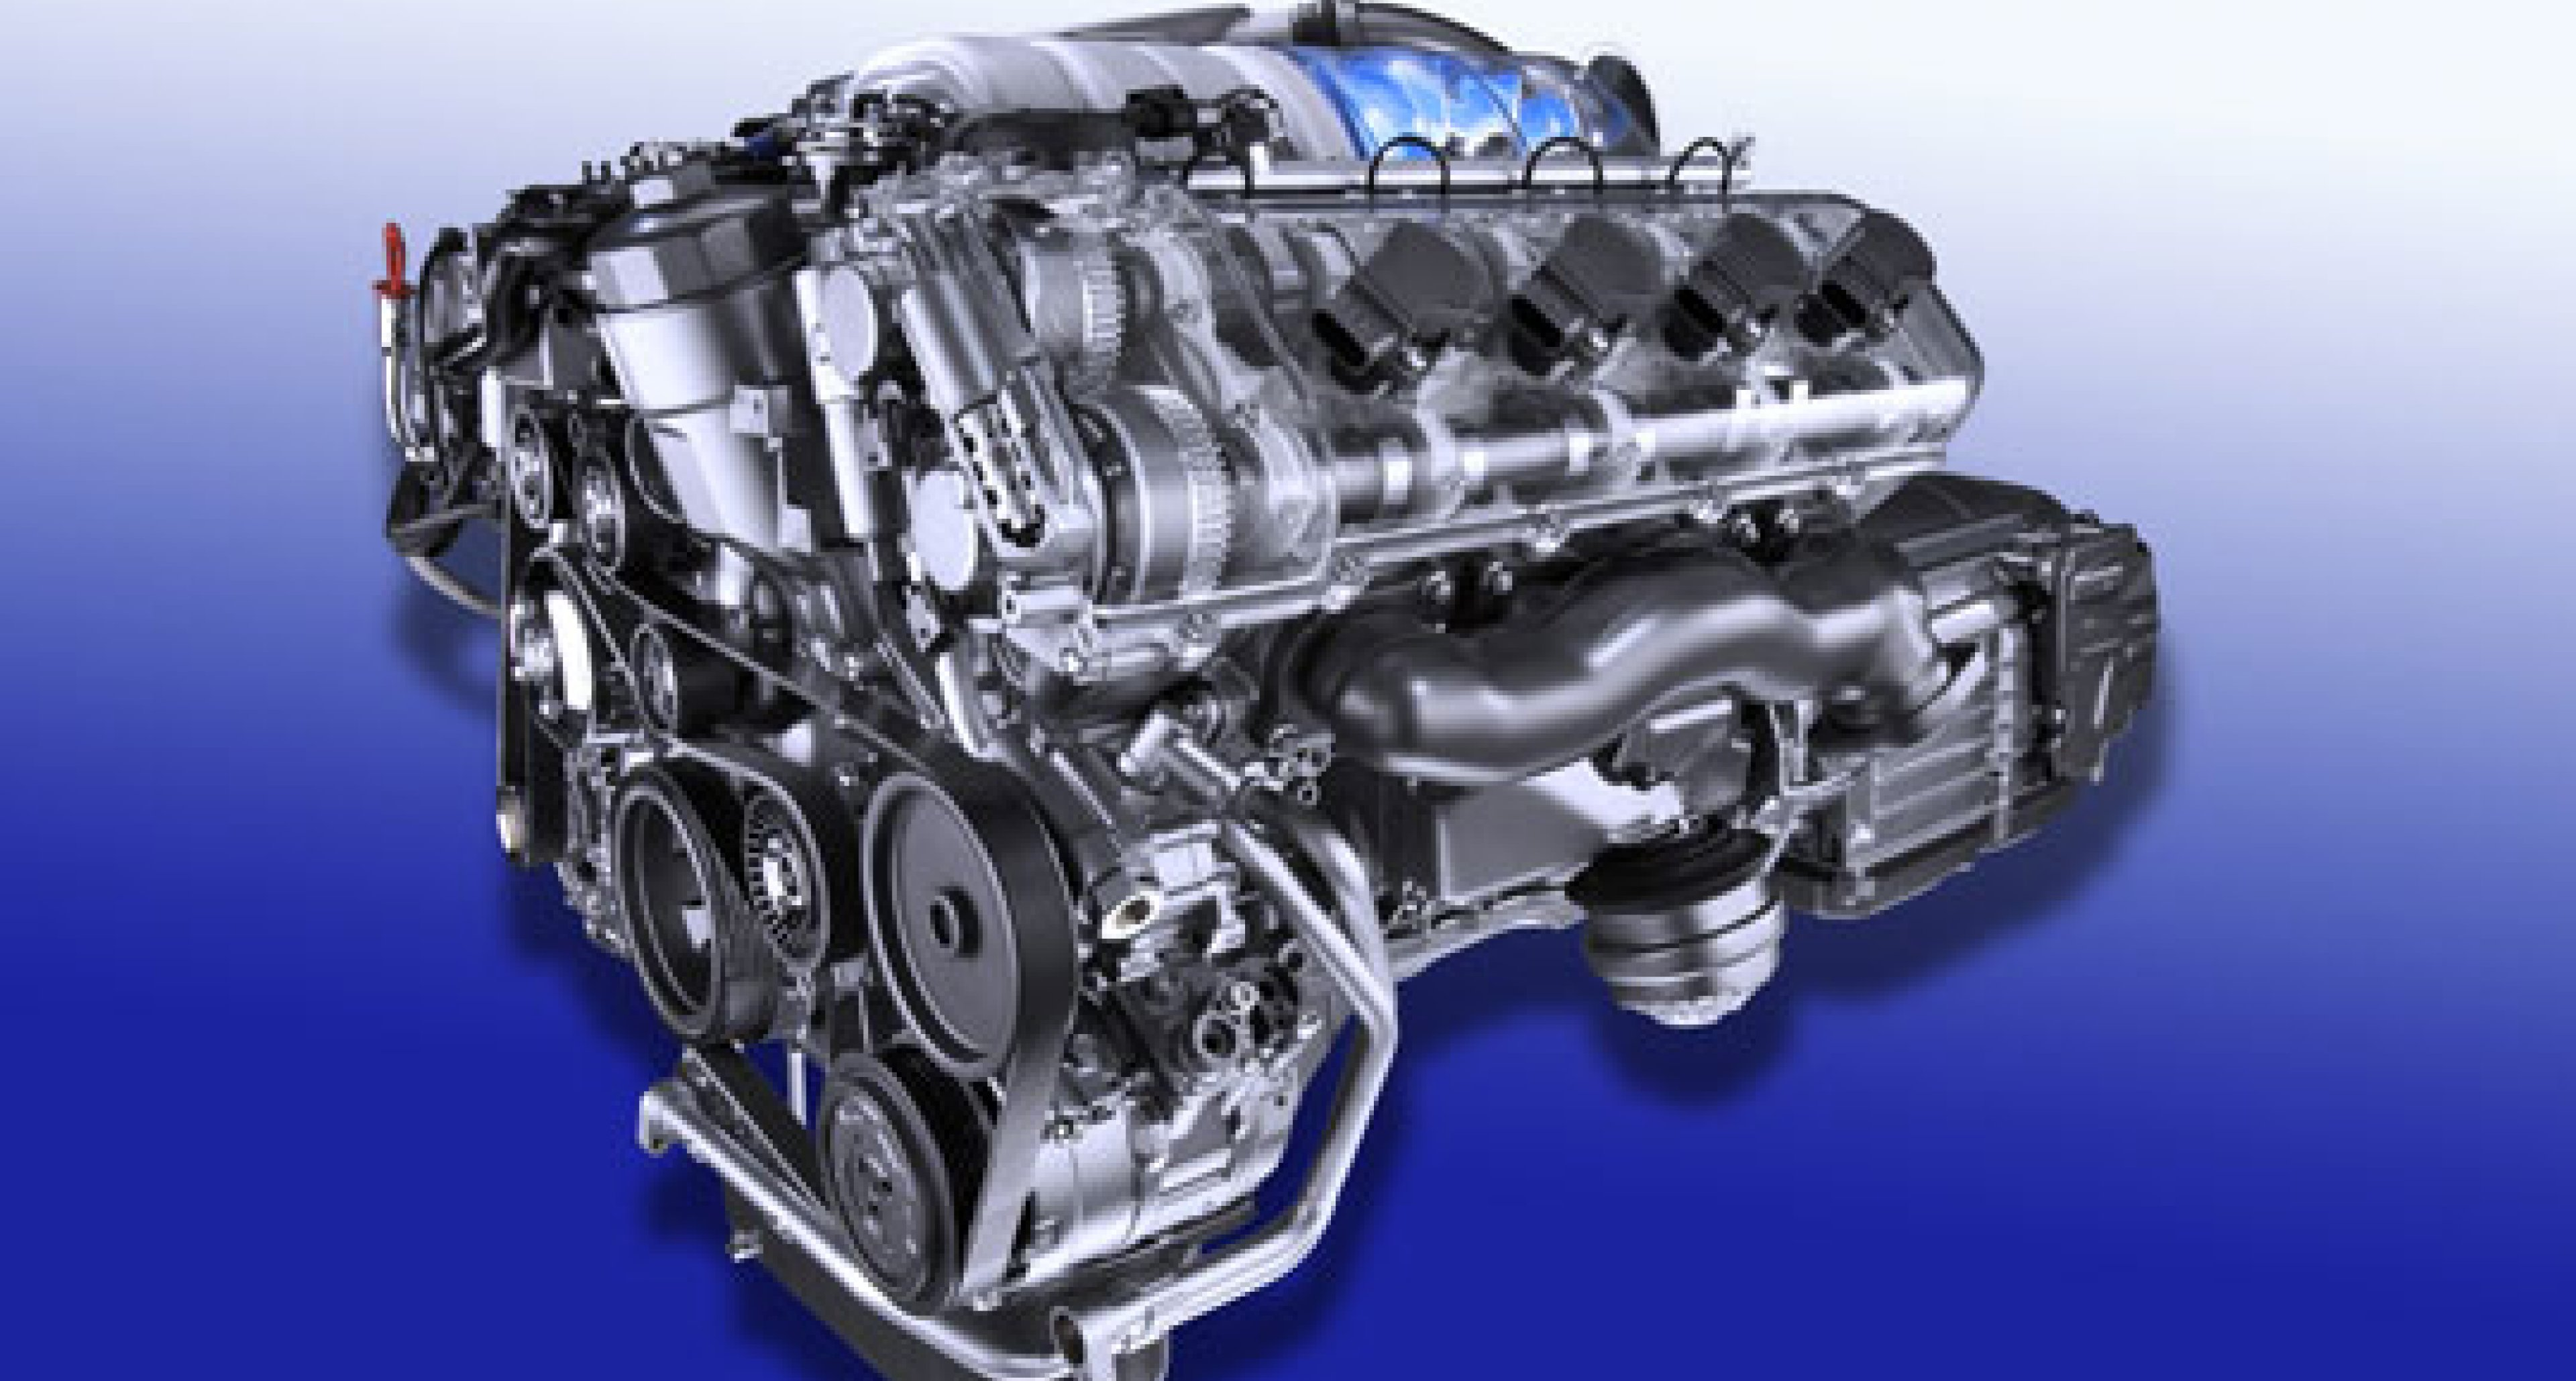 New AMG V8 engine with 510 hp